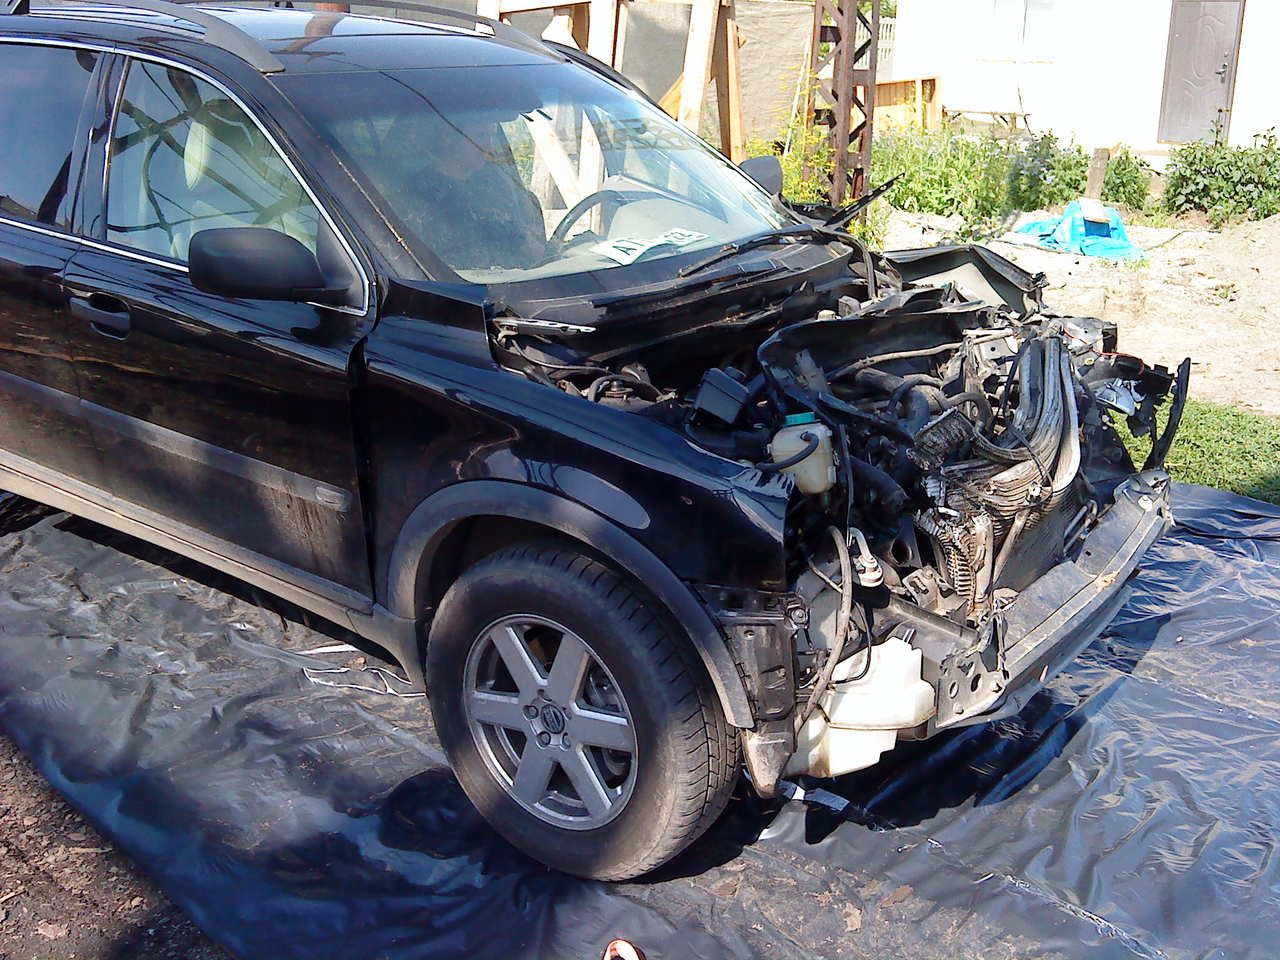 2005 Volvo XC90 Pictures, 2.5l., Gasoline, Automatic For Sale